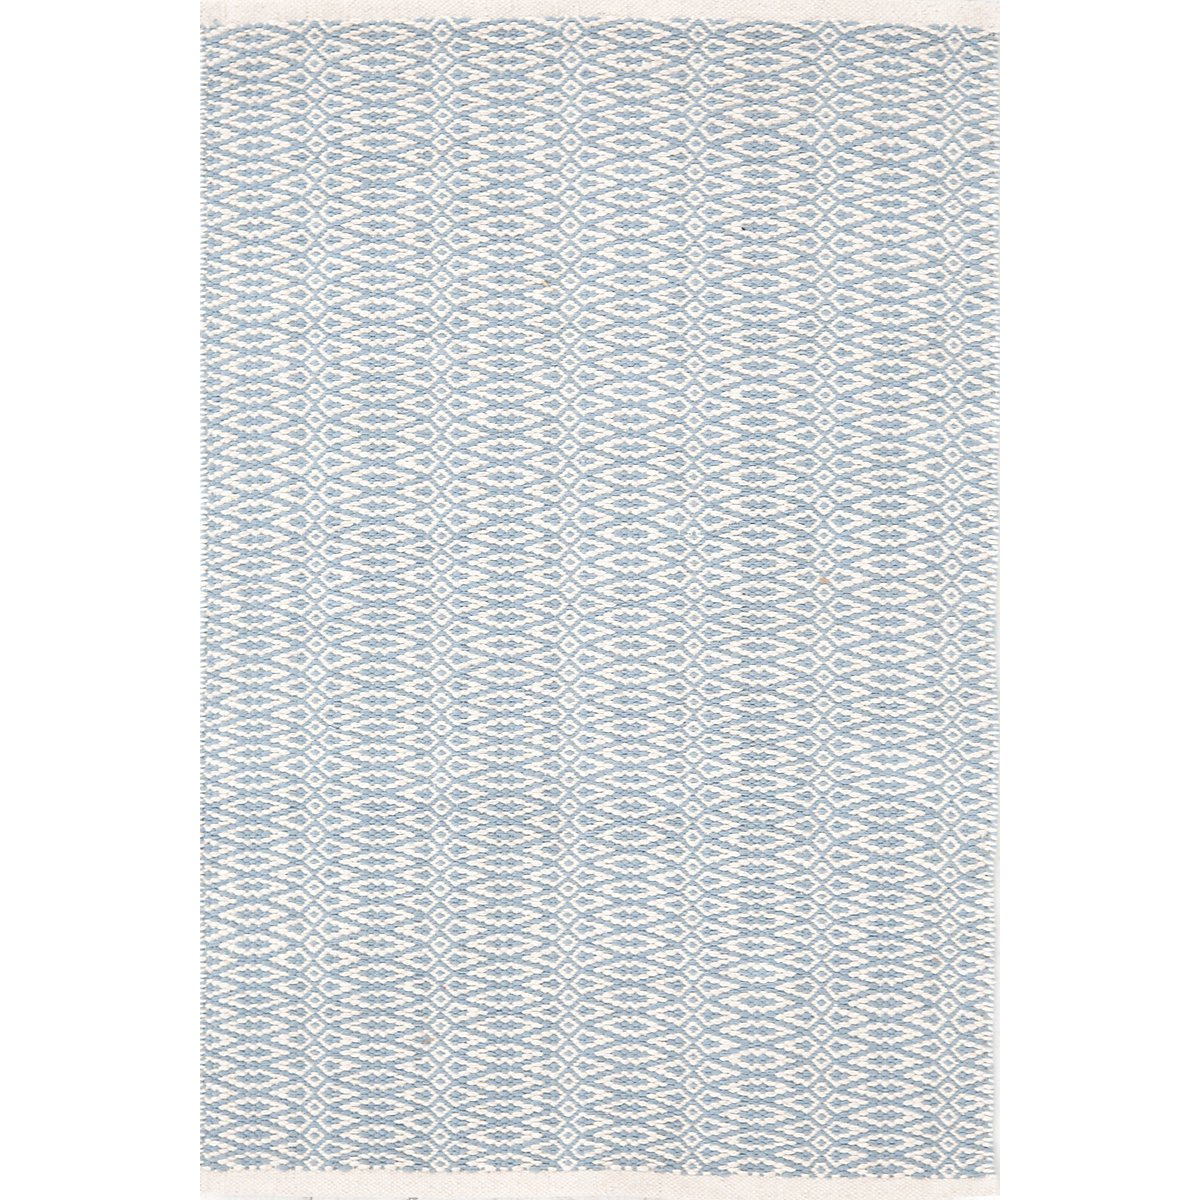 Fair Isle Swedish Blue & Ivory Cotton Woven Rug design by Dash & Albert